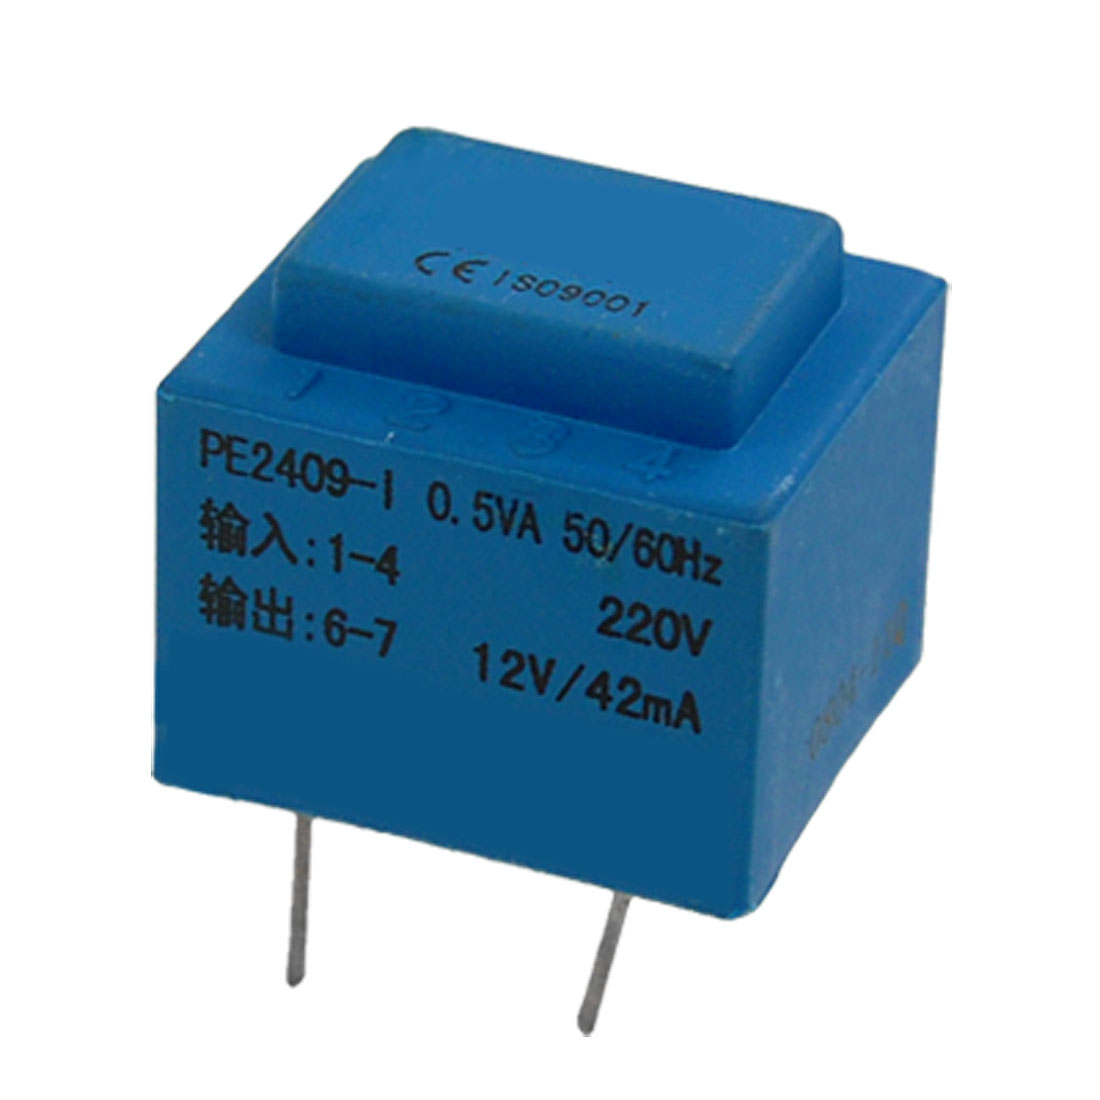 Voltage-Converter-4-Pins-Encapsulated-Transformer-0-5VA